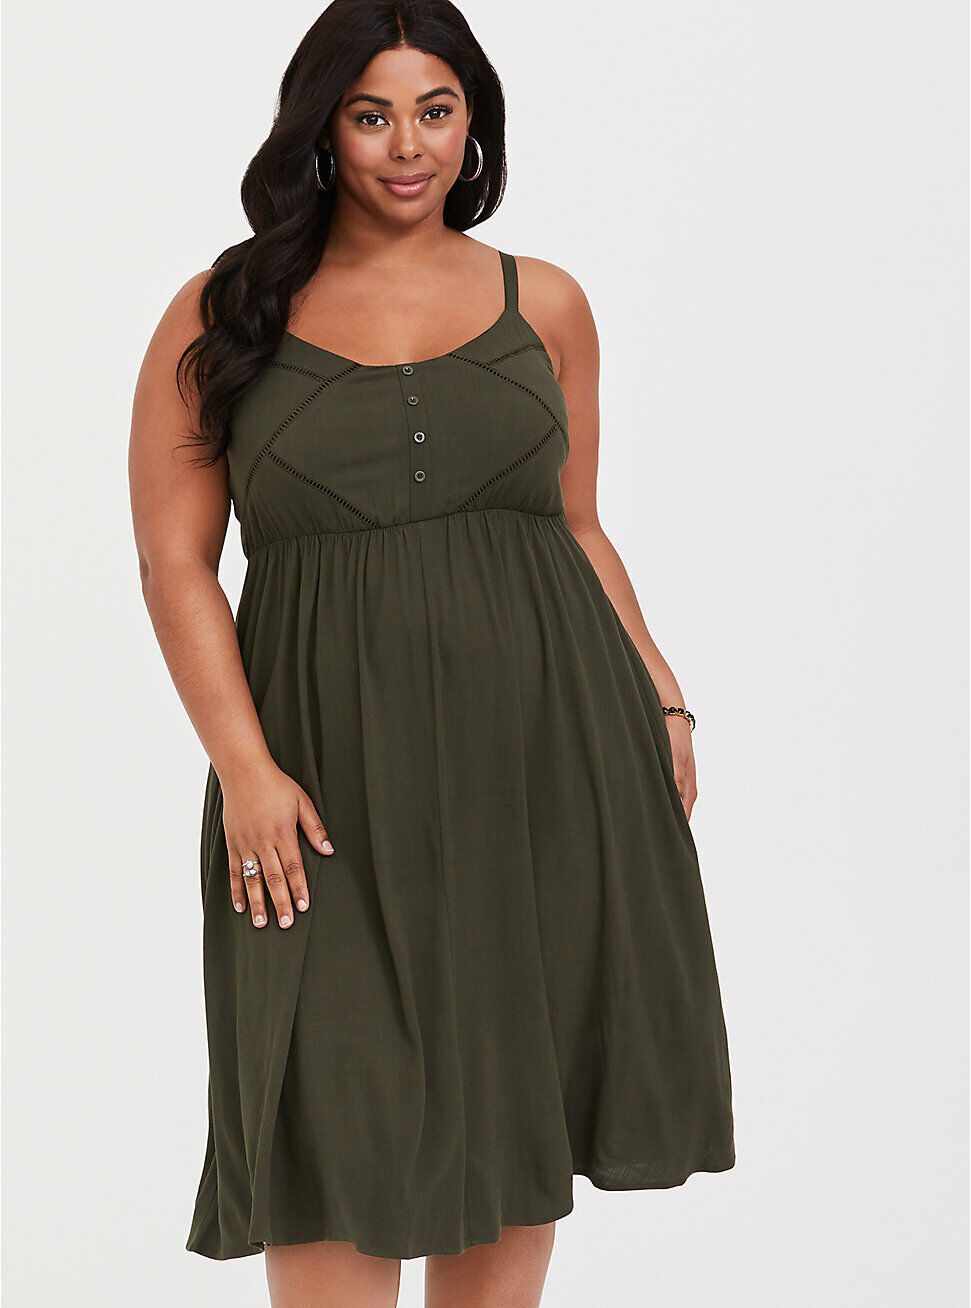 NWT damen Torrid Olive Grün Button Front Midi Dress Größe 12 0 Large